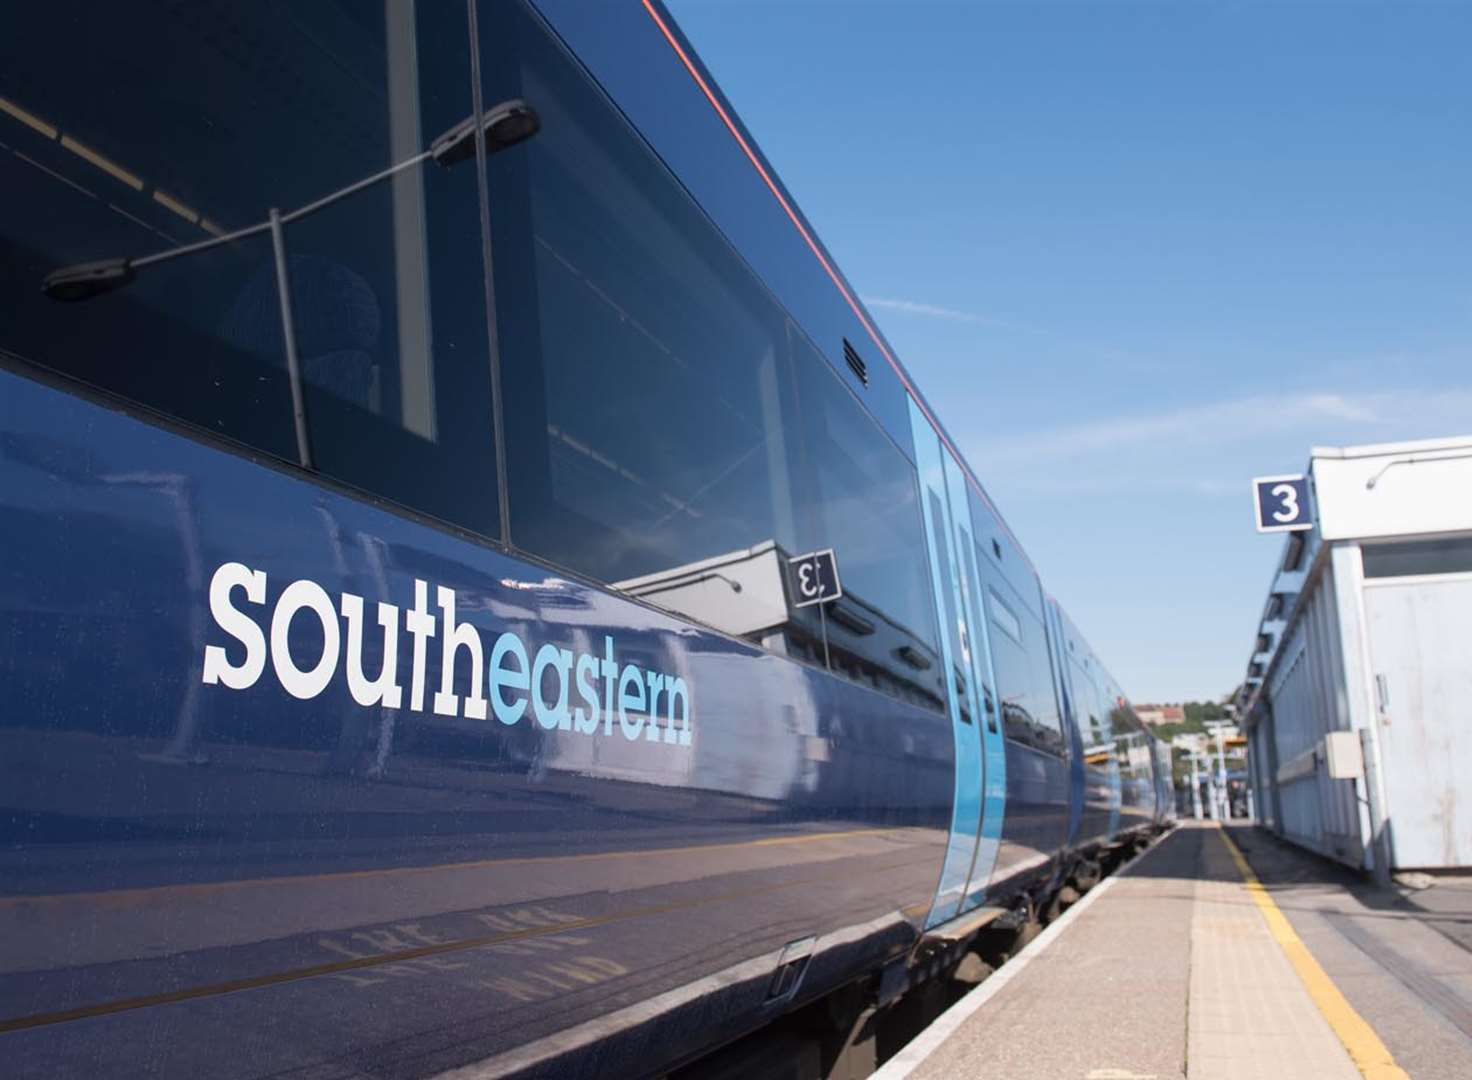 Southeastern launches free wi-fi for passengers